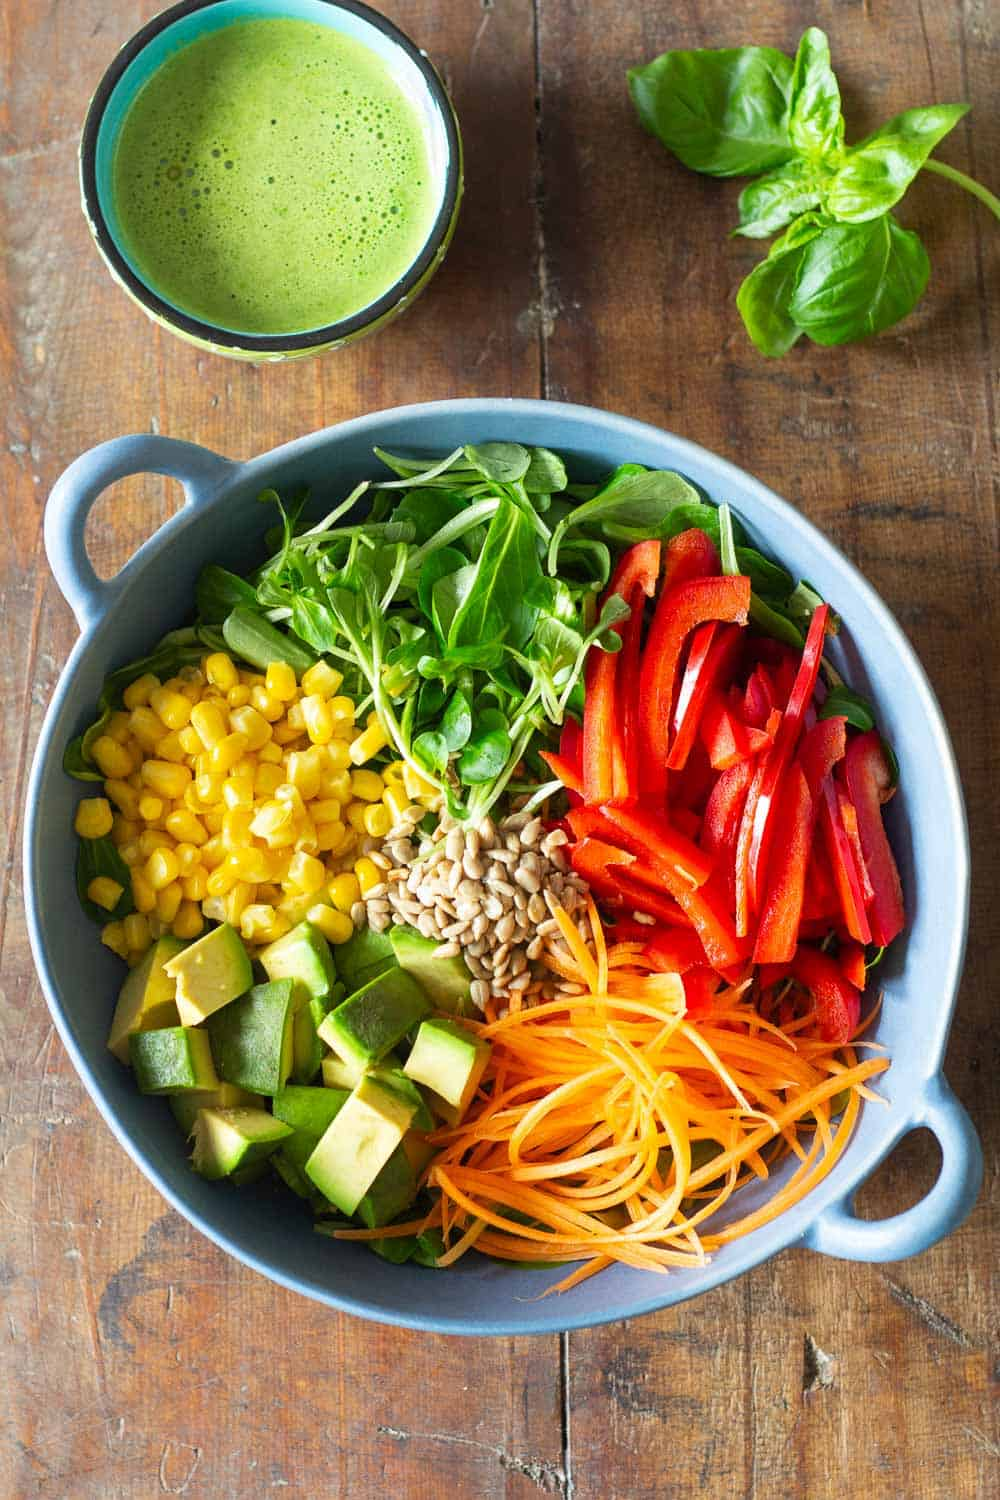 SUMMER SALAD WITH HOMEMADE SALAD DRESSING GREEN HEALTHY COOKING